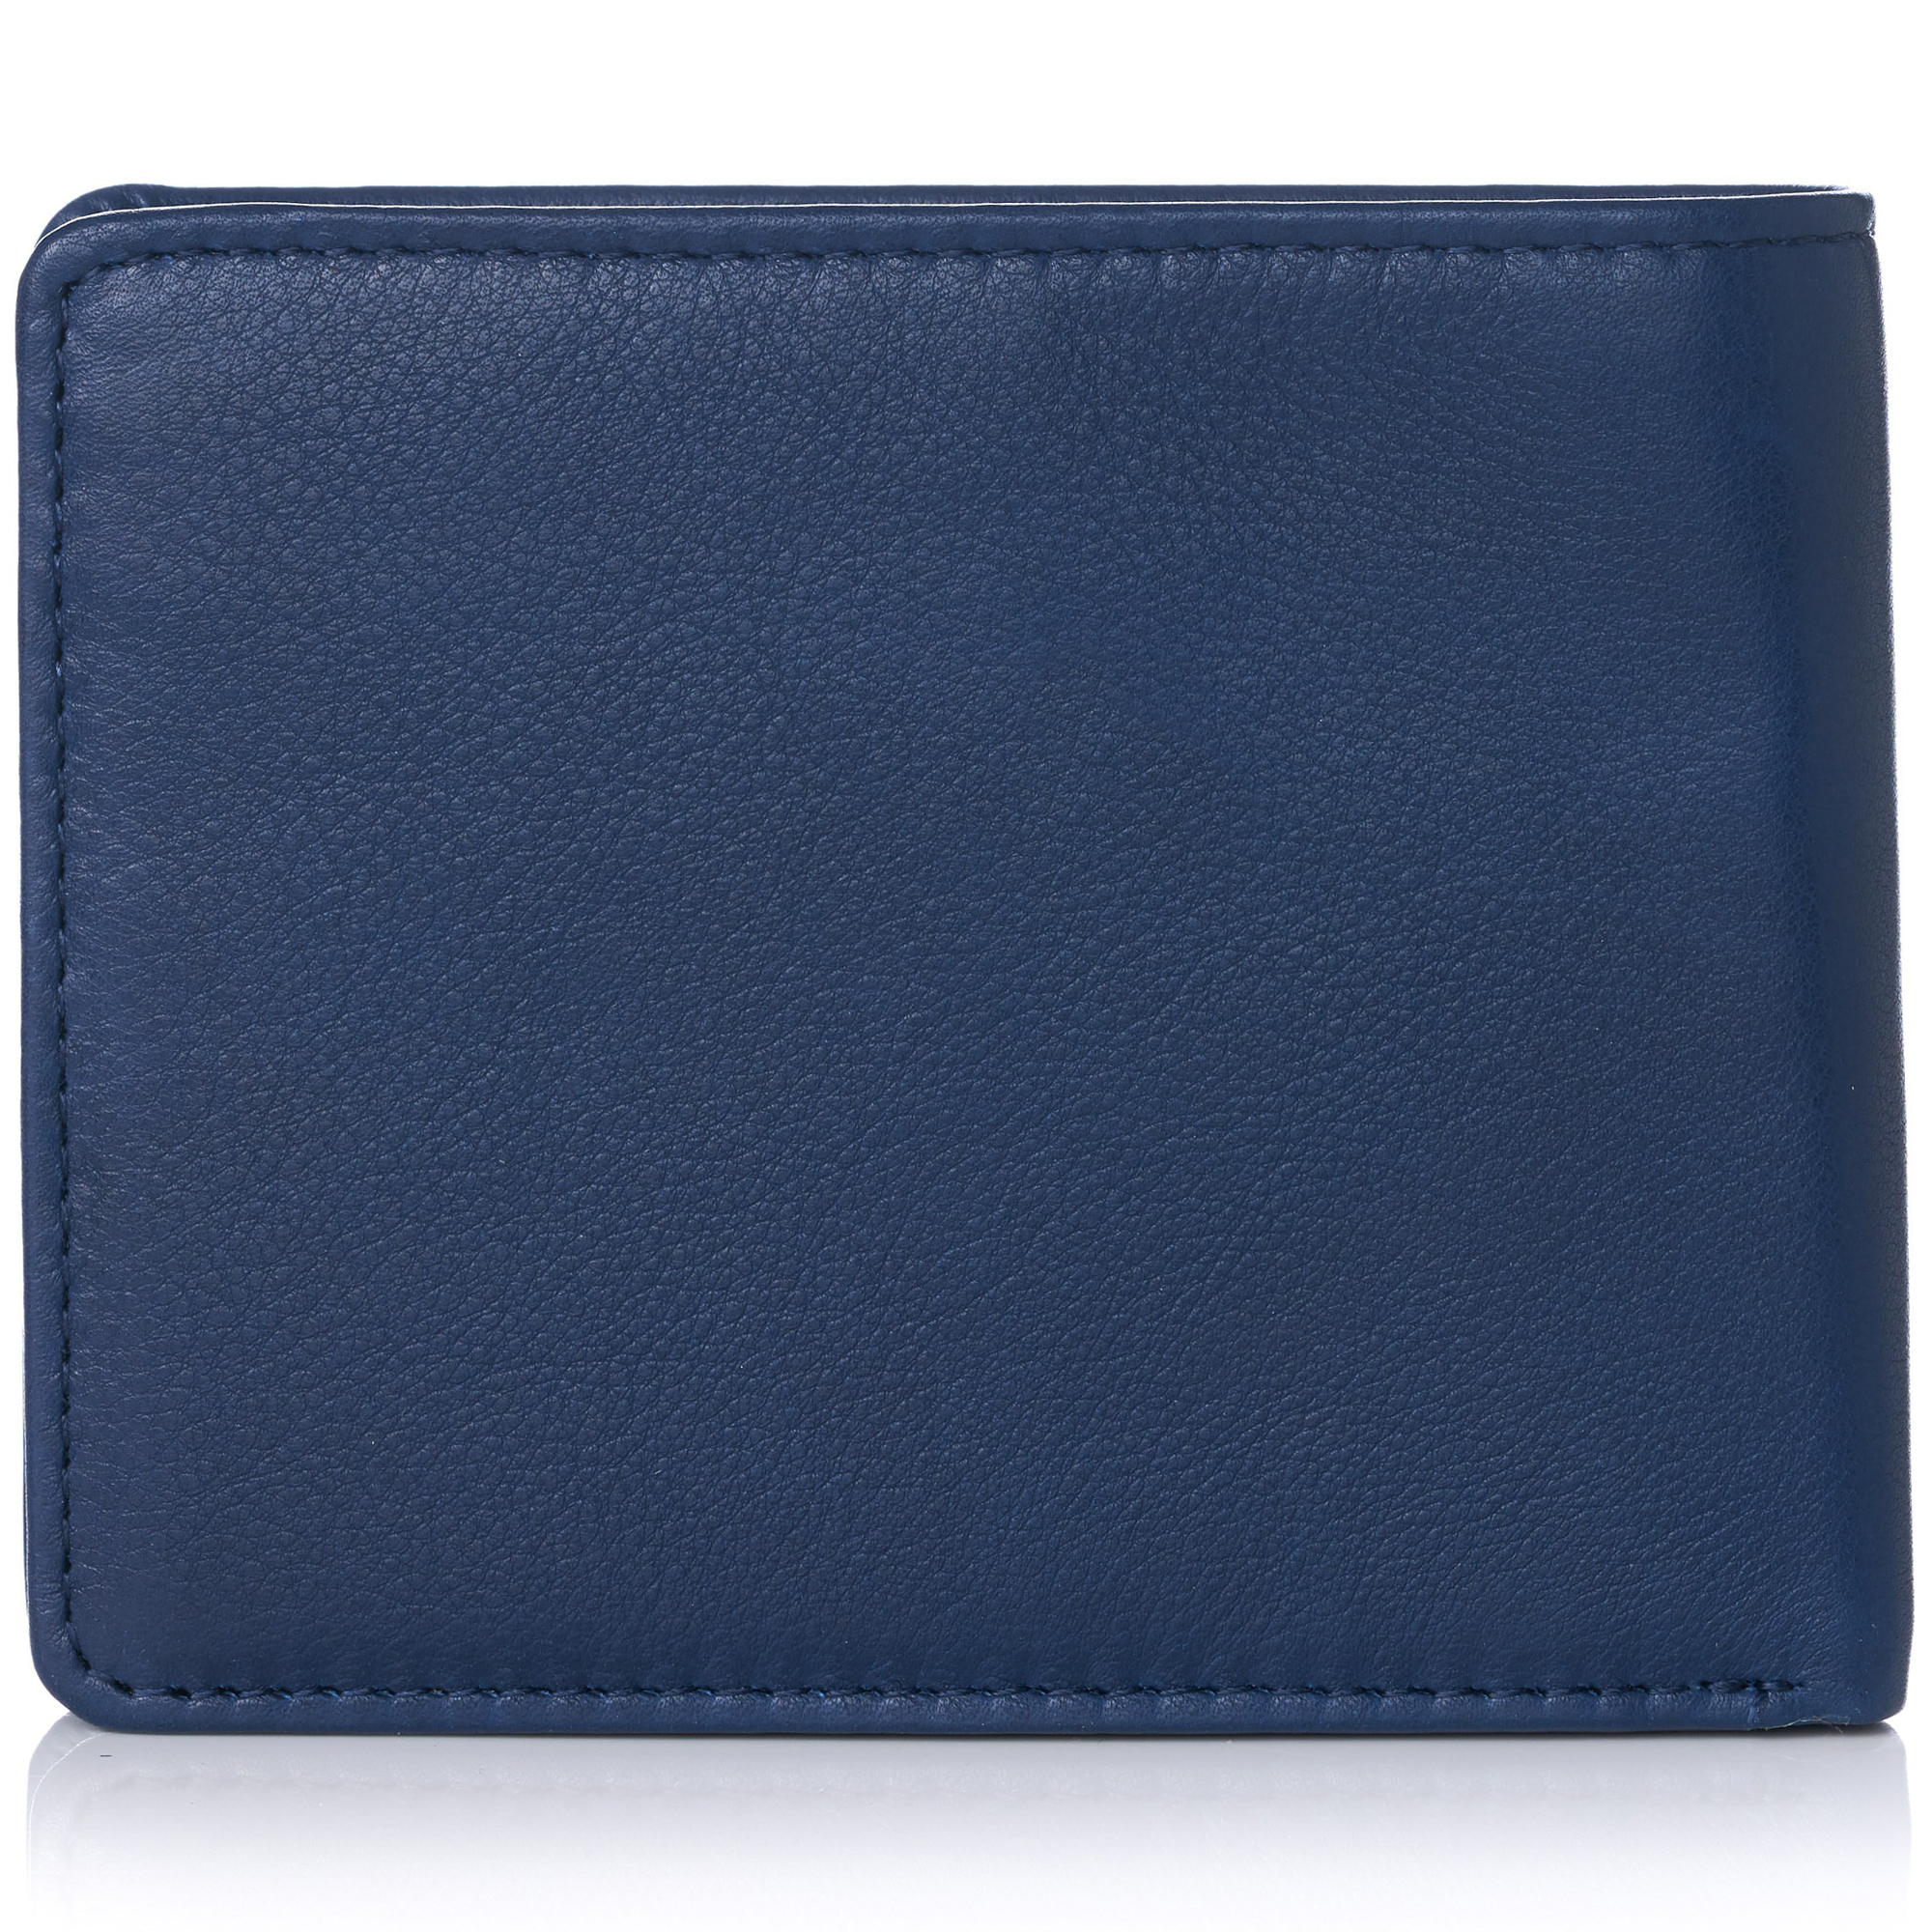 miniature 96 - Alpine-Swiss-RFID-Mens-Wallet-Deluxe-Capacity-Passcase-Bifold-Two-Bill-Sections